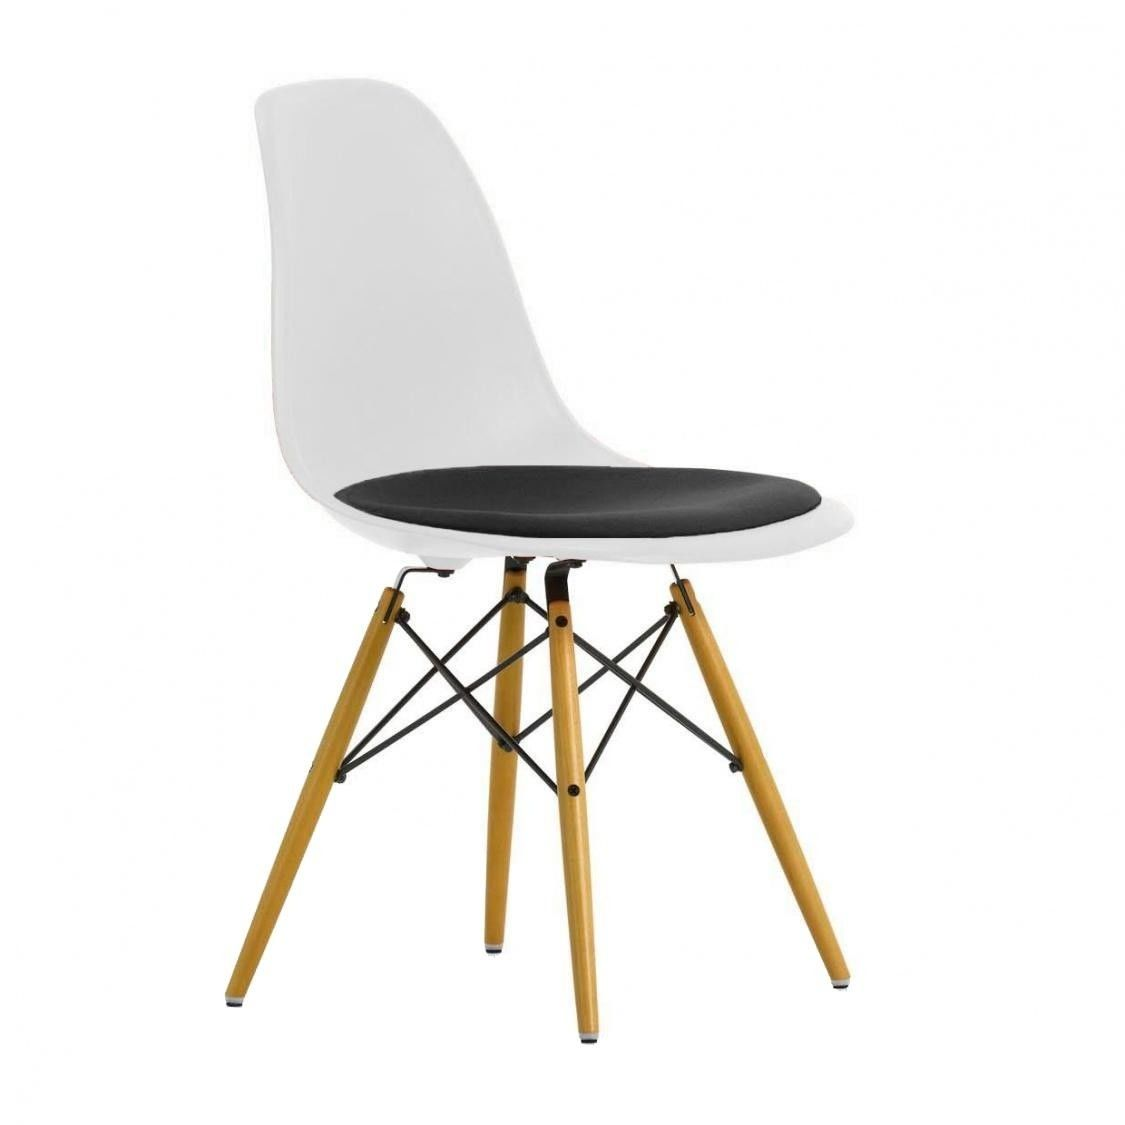 Vitra   Eames Plastic Side Chair DSW Upholst. H43cm   White/dark Grey/